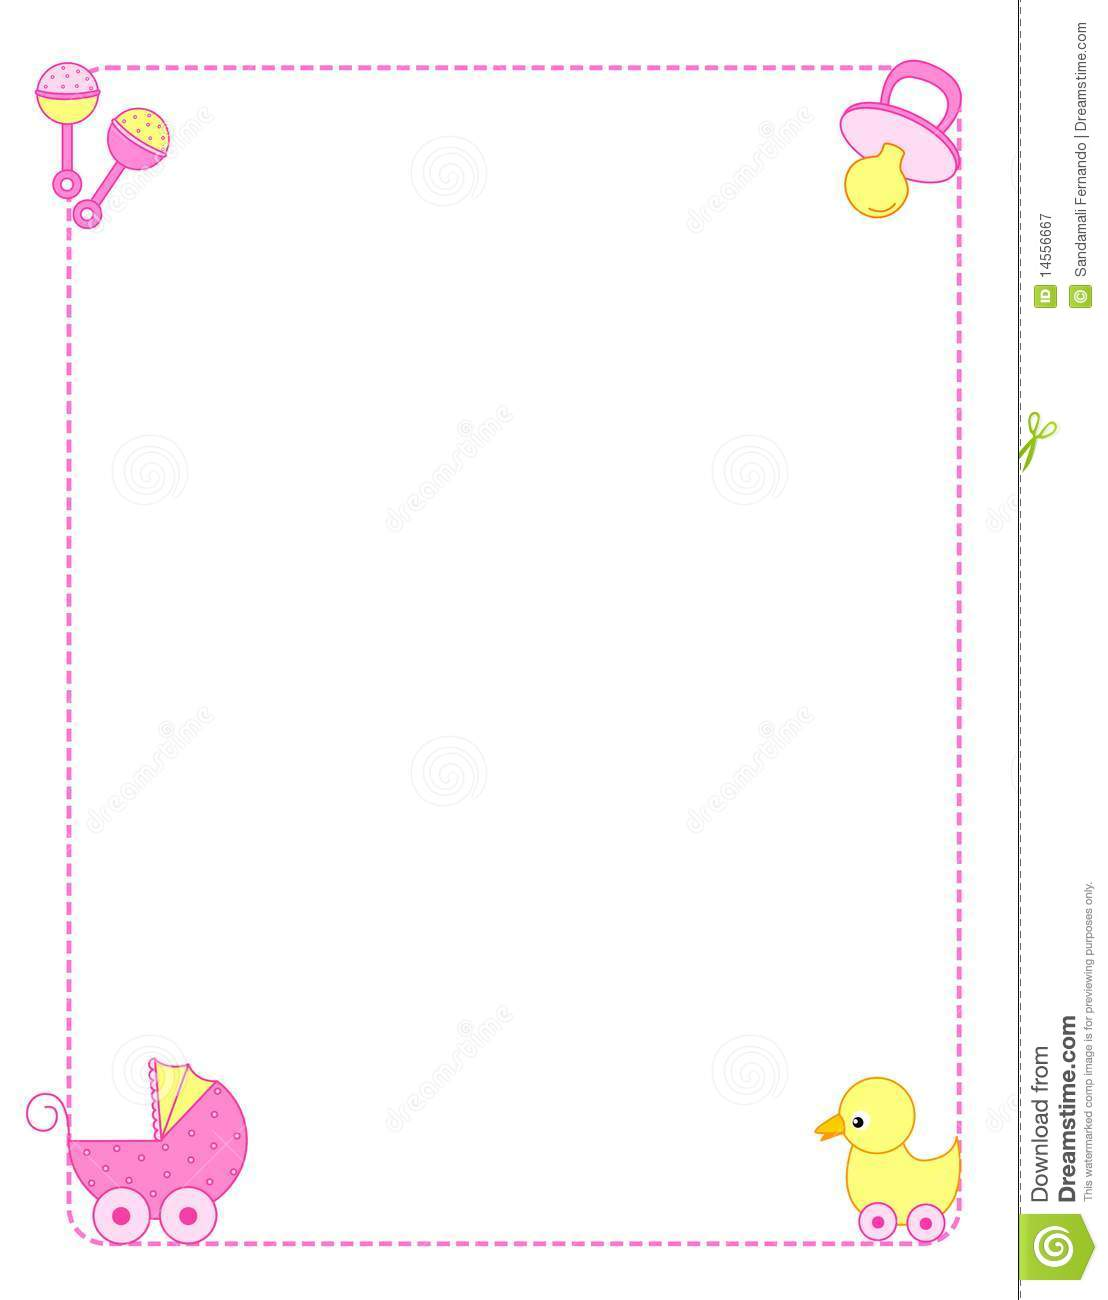 Free printable baby boy borders for paper vatozozdevelopment free altavistaventures Images